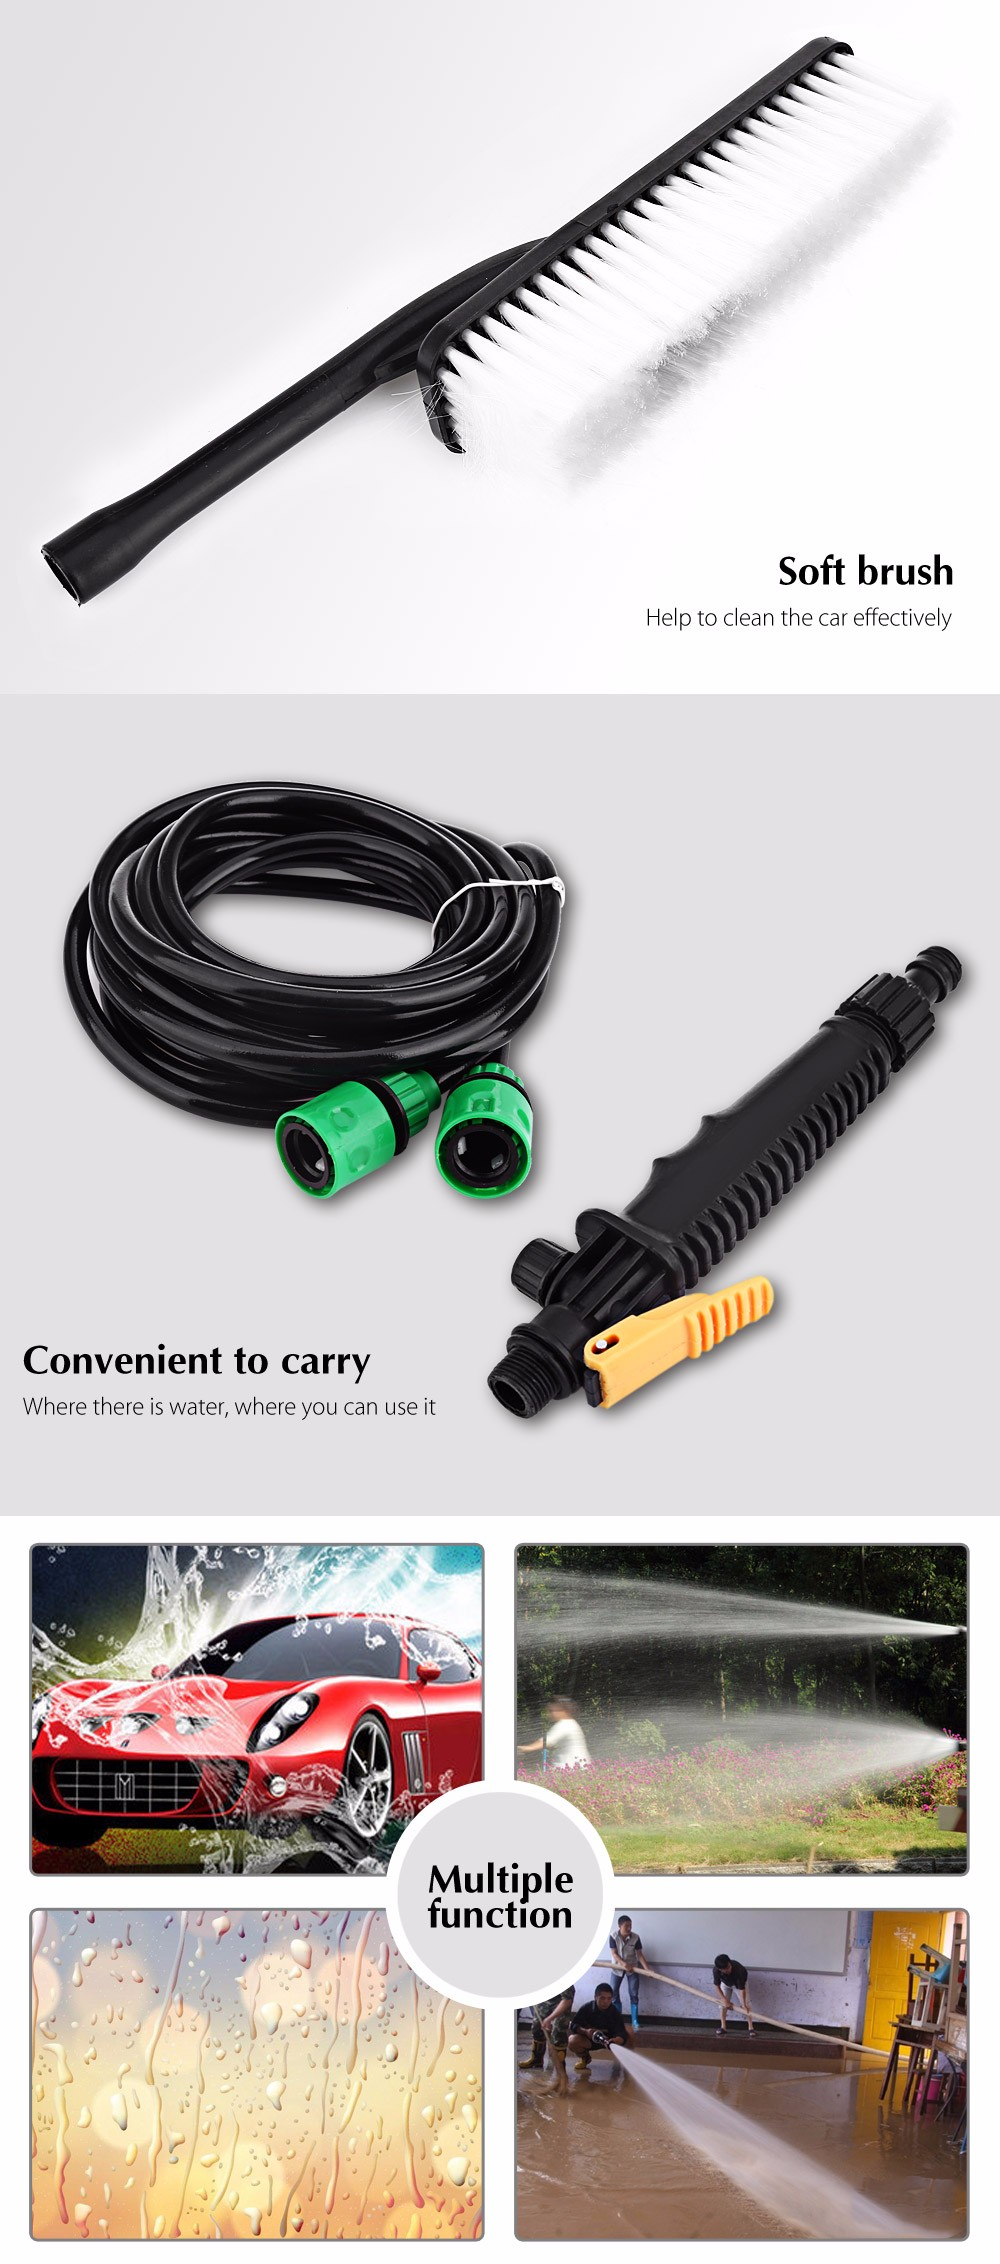 BOJIN 12V 36W Vehicle-mounted Car Washer High Pressure Cleaning Pump Washing Machine with Brush